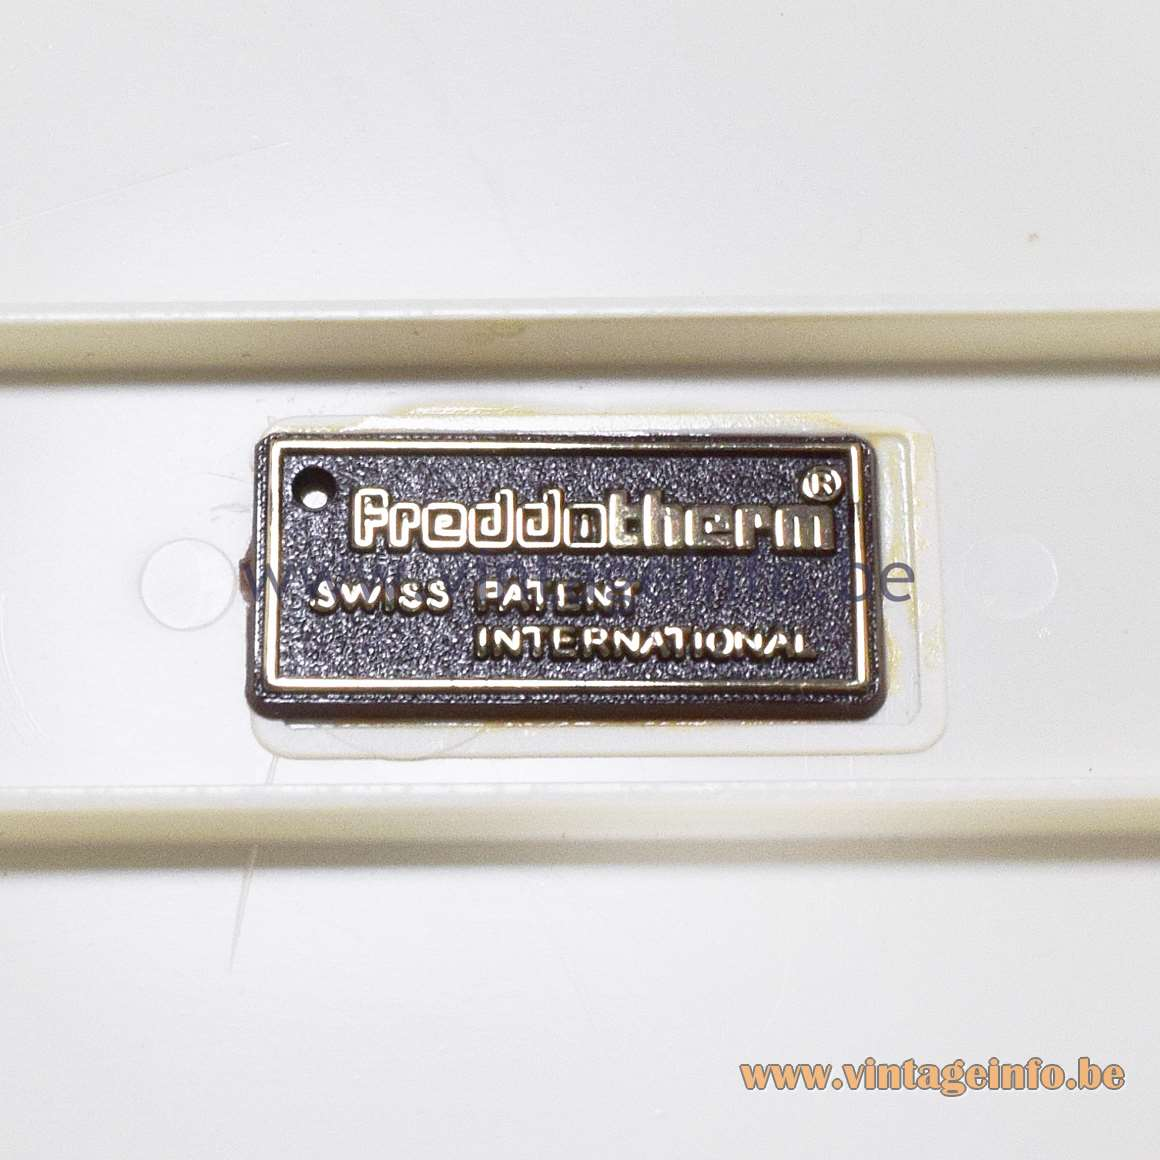 Freddotherm label - Swiss Patent International